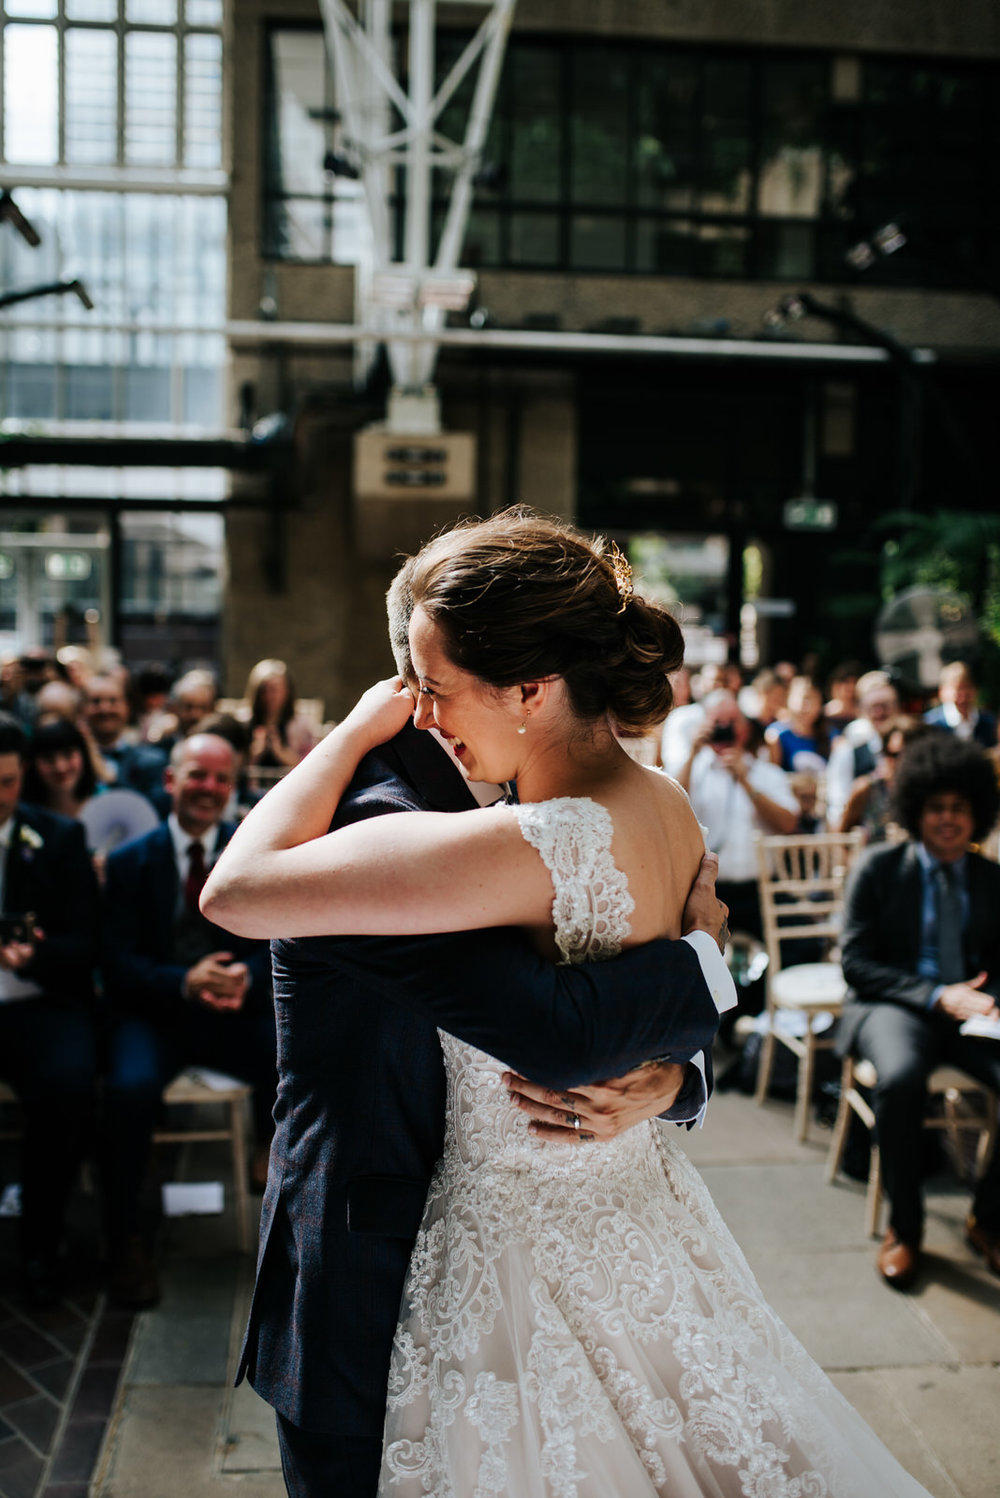 Bride and groom embrace each other in a joyful hug after sharing